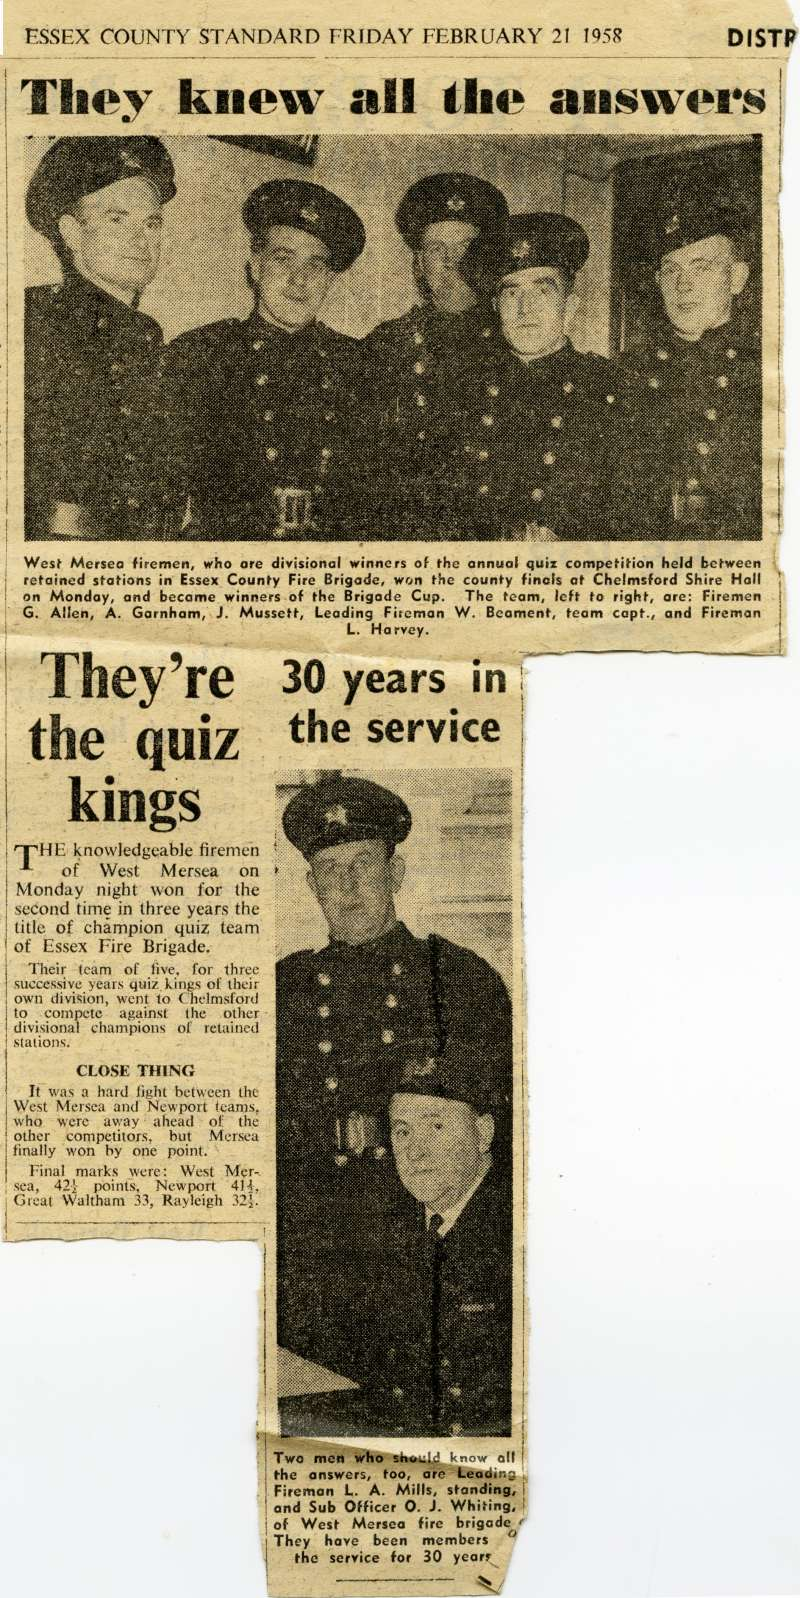 West Mersea firemen are quiz champions. Photographs G. Allen, A. Garnham, J. Mussett, W. Beament and L. Harvey. Second picture has L.A. Mills and O.J. Whiting.